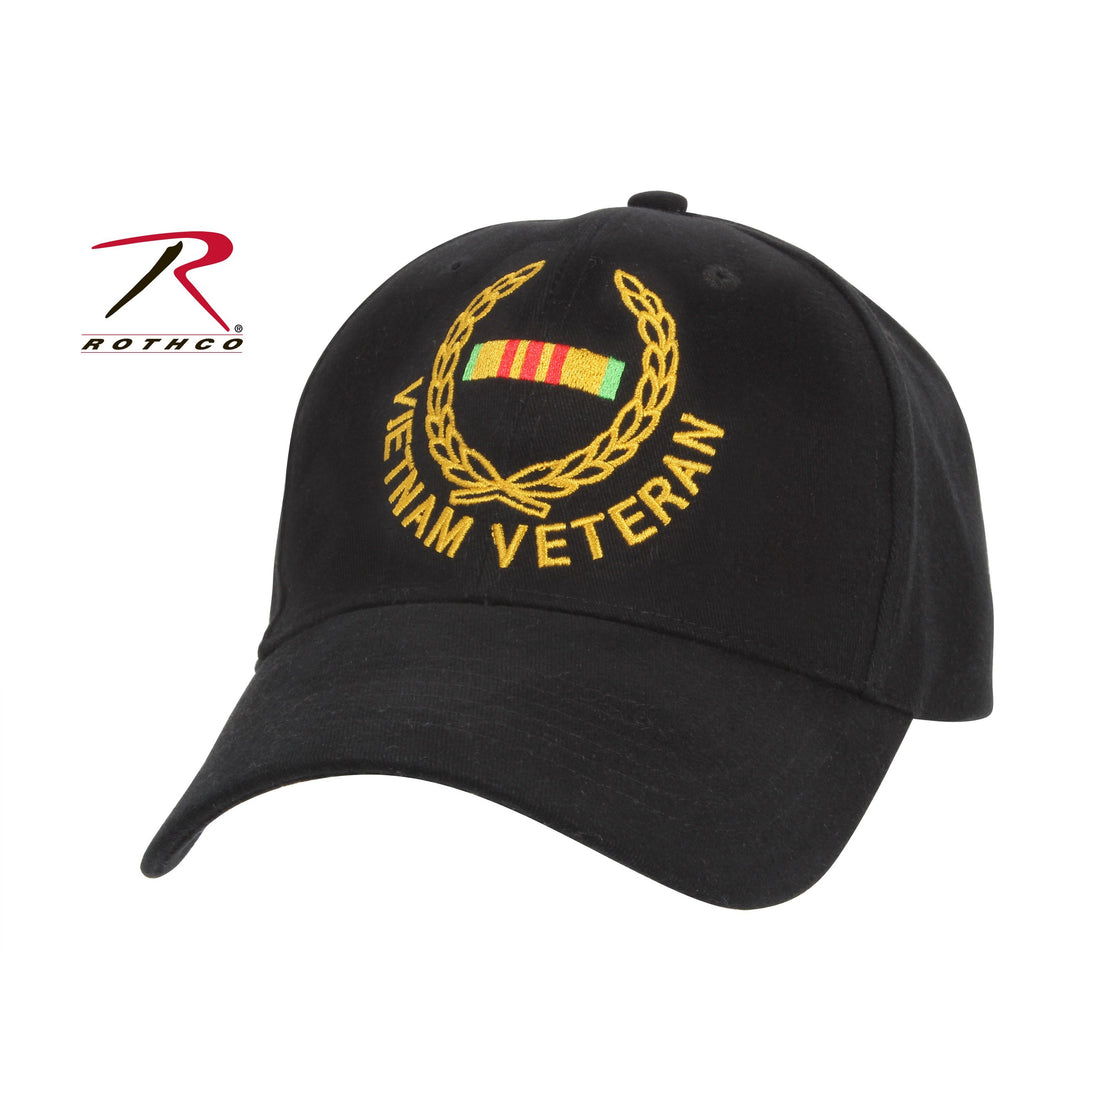 Vietnam Veteran Supreme Low Profile Insignia Cap